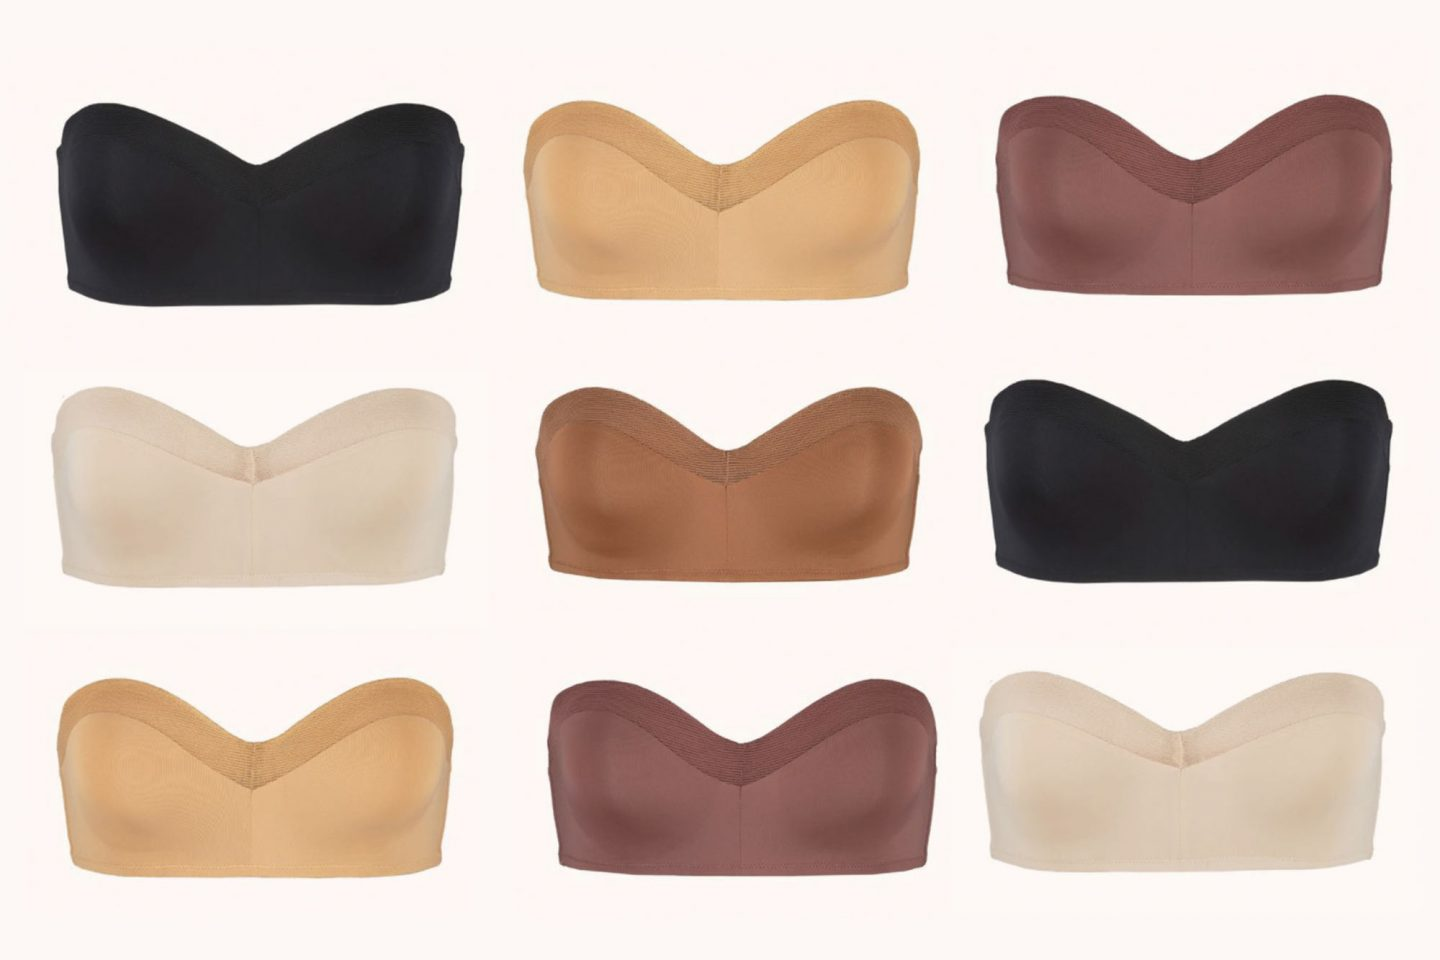 Lively Bra Colors - Best Strapless Bra according to Ashley Brooke